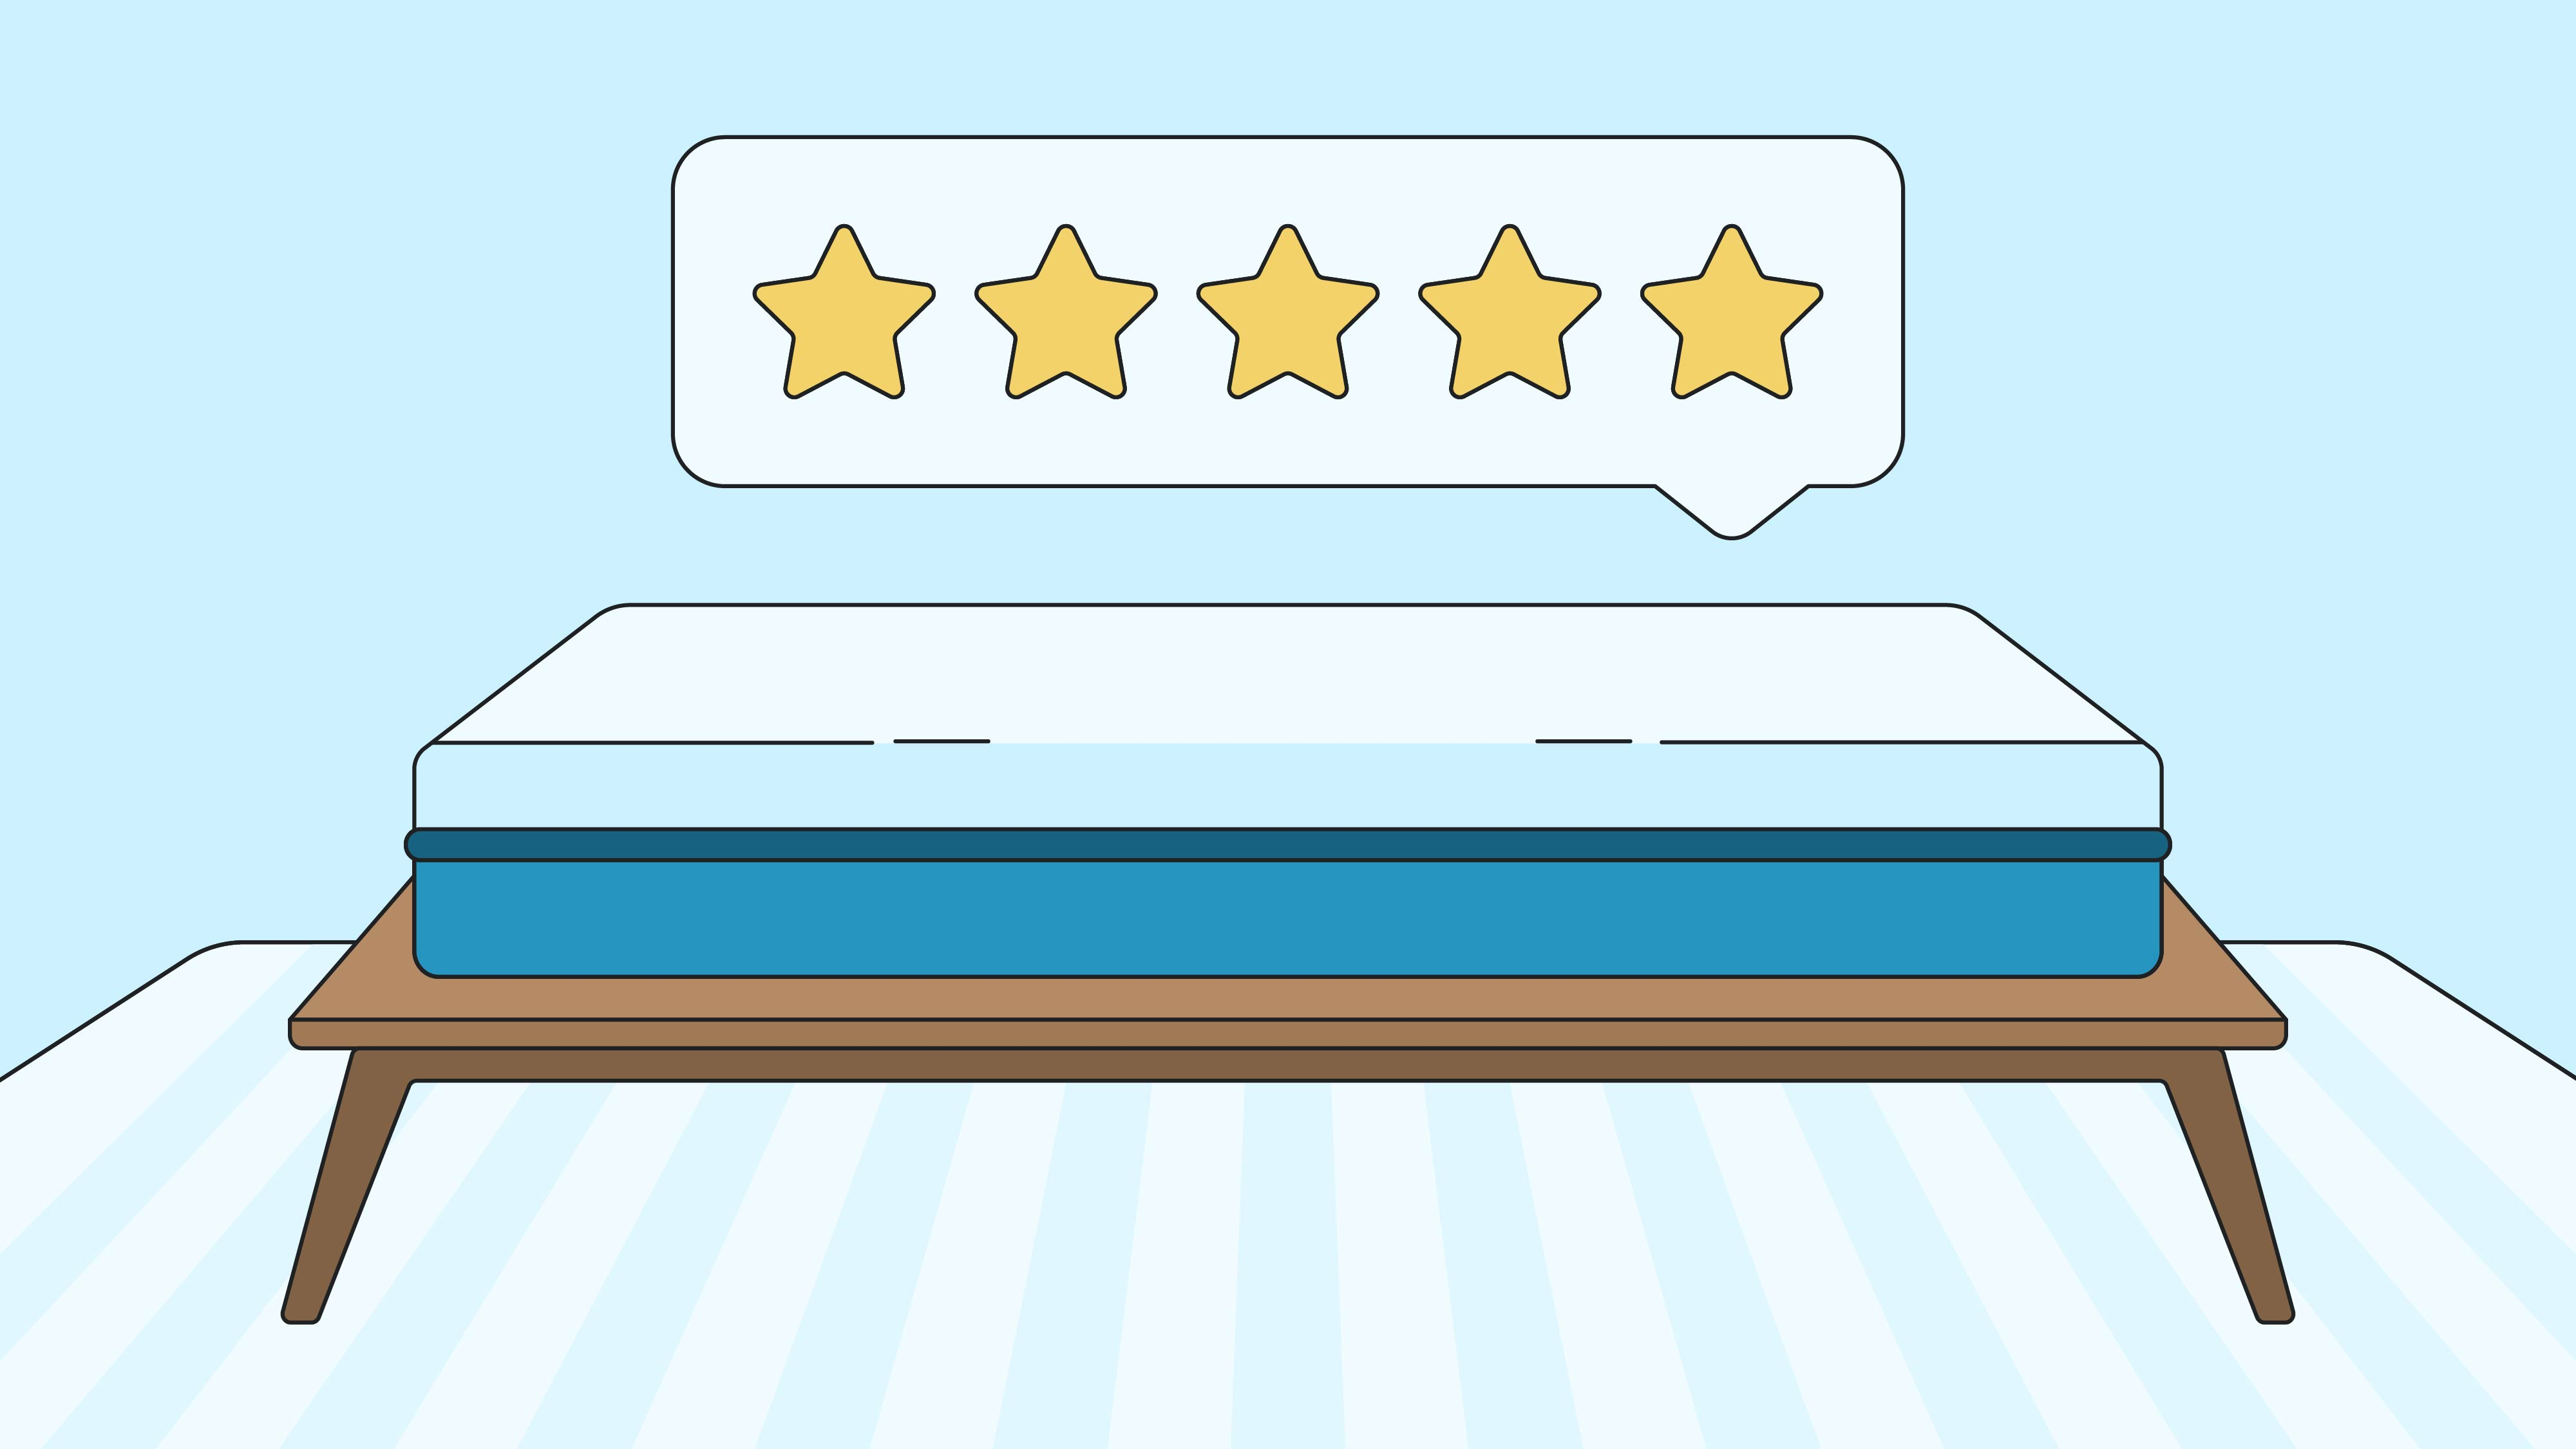 Best Memory Foam Mattress of 2020: Reviews and Buyer's Guide